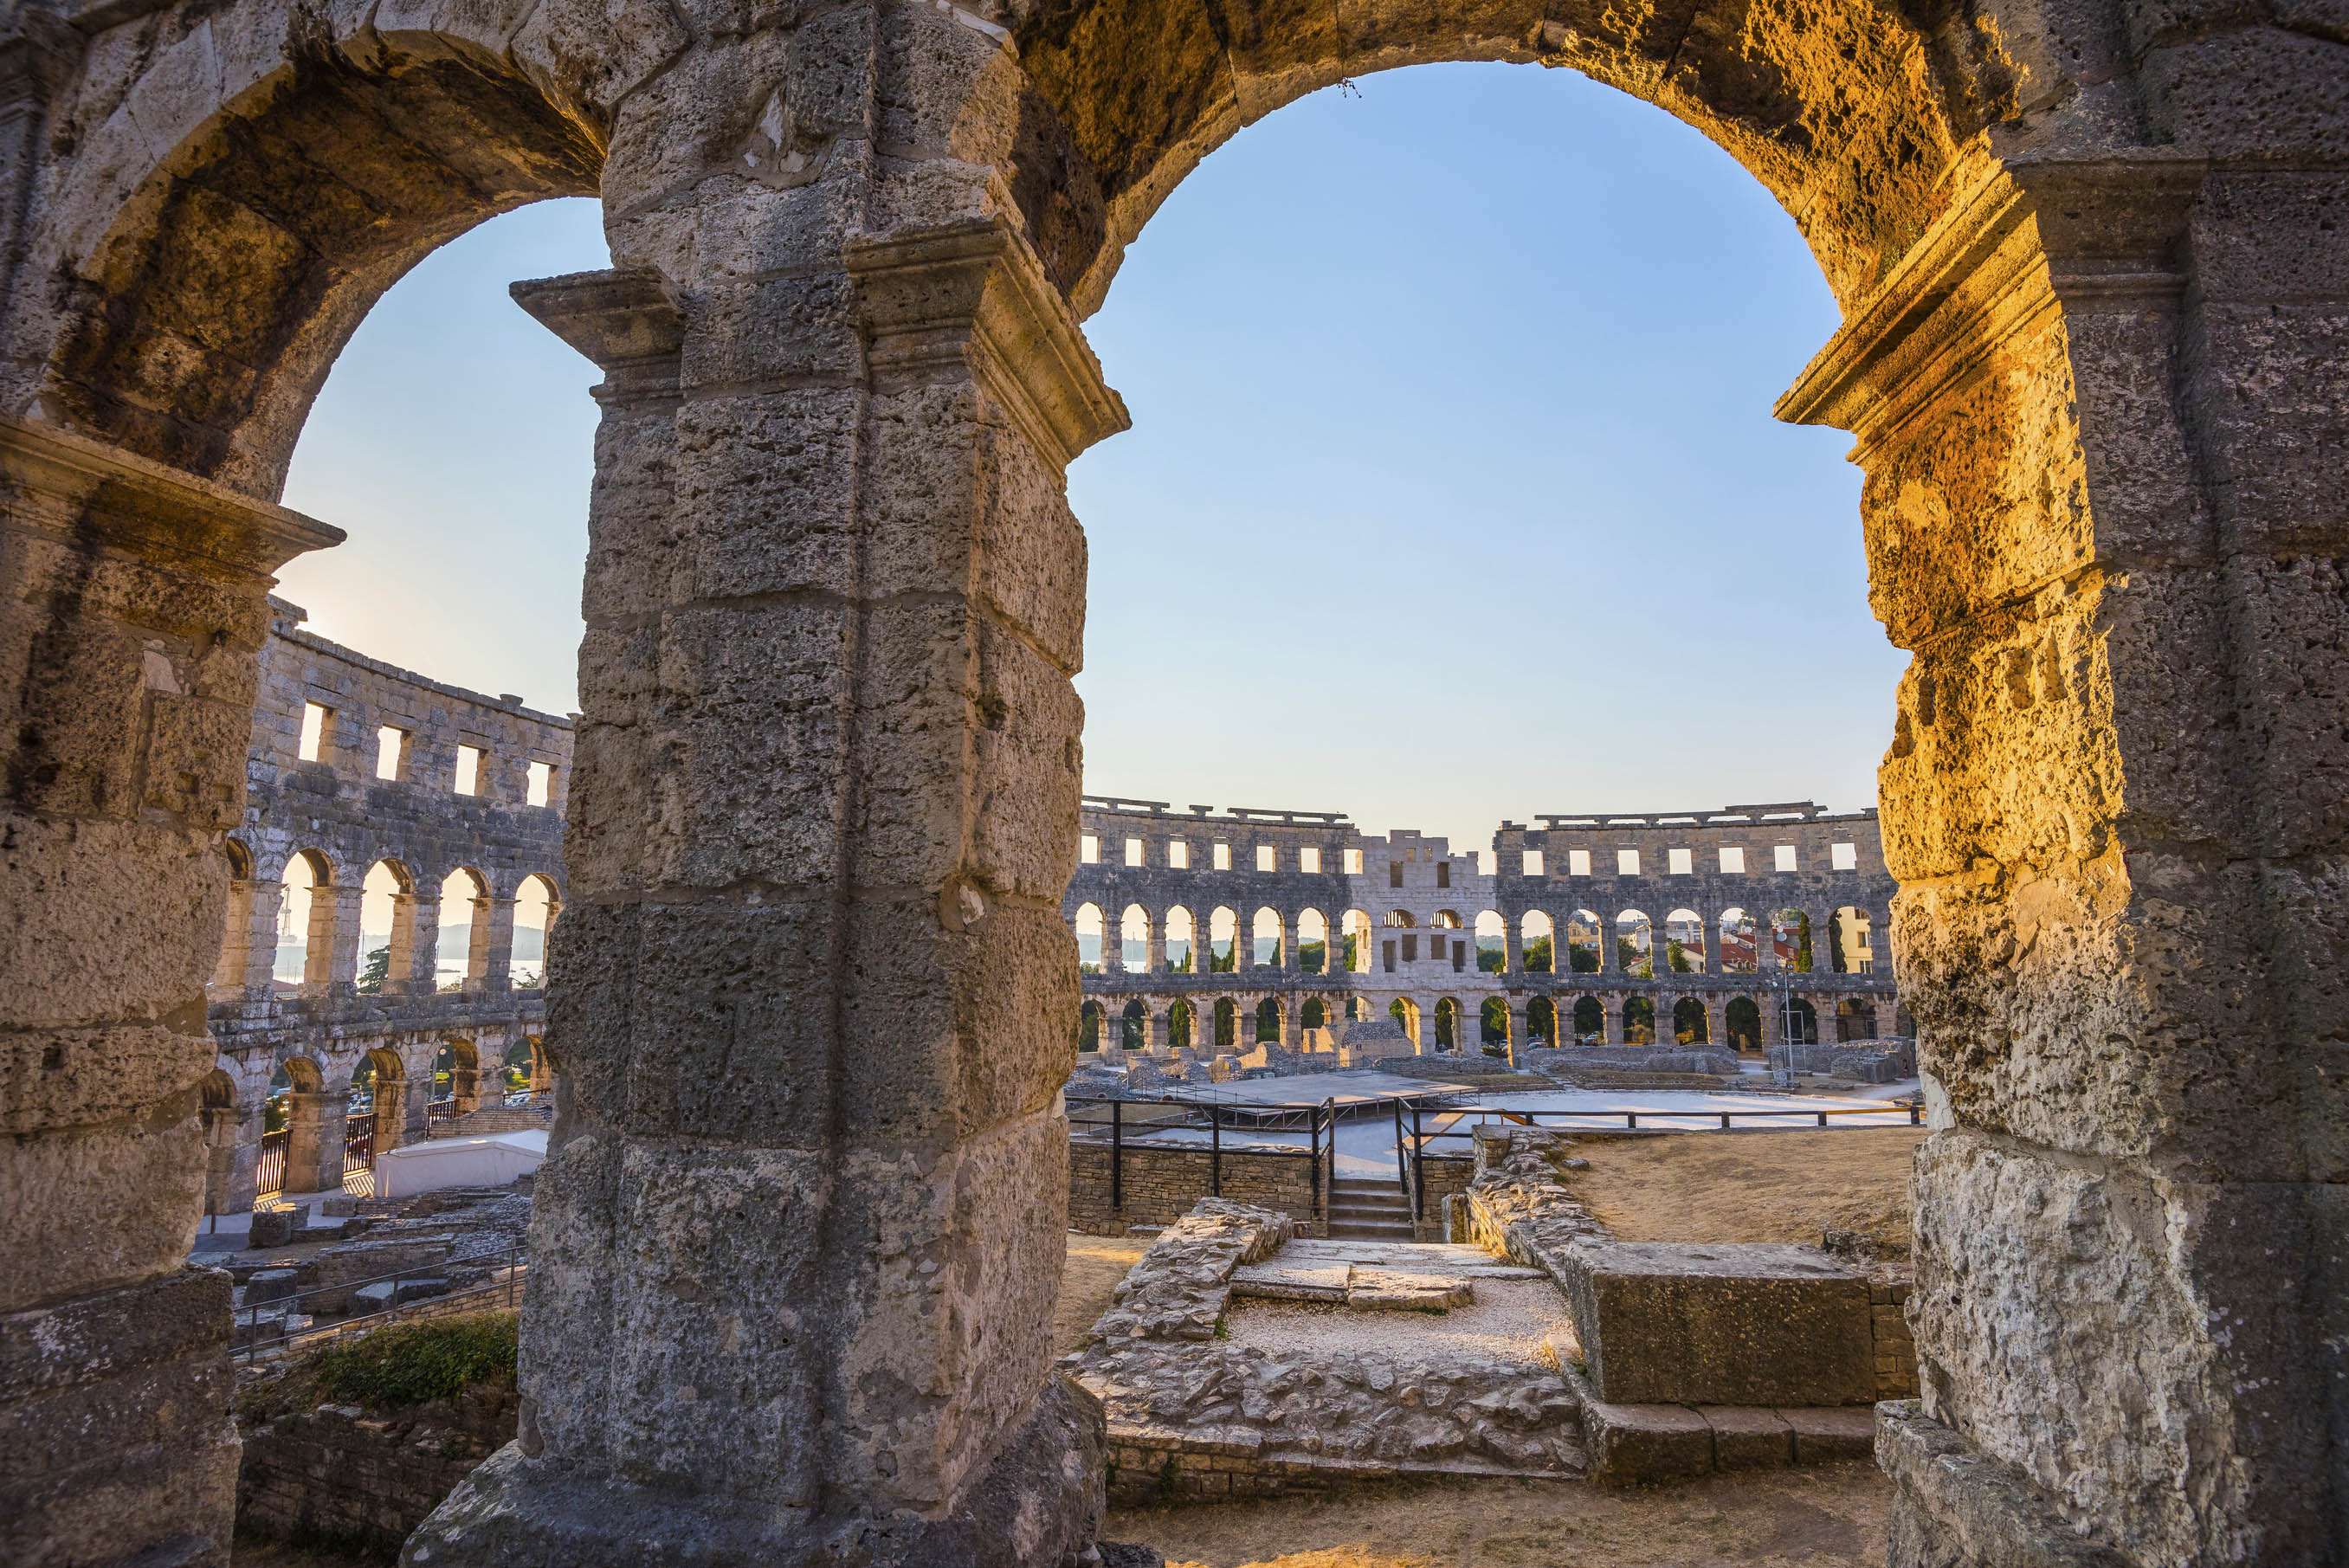 View through rounded arches touched by sun at the ampitheatre in Pula